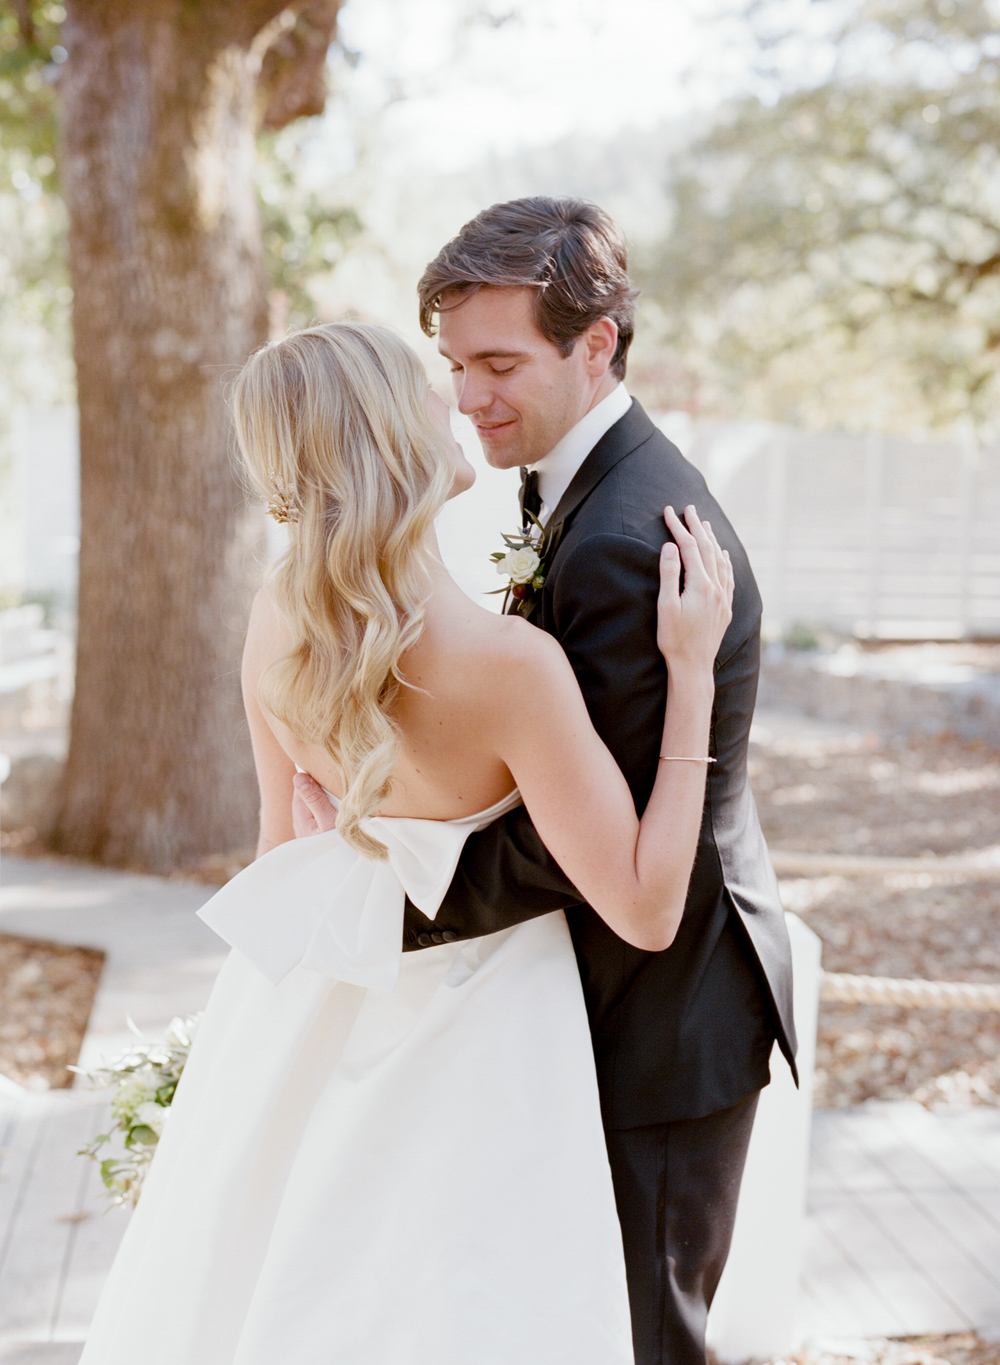 SylvieGil-Durham-Ranch-Organic-Ethereal-Rustic-Dress-Bow-KissWedding